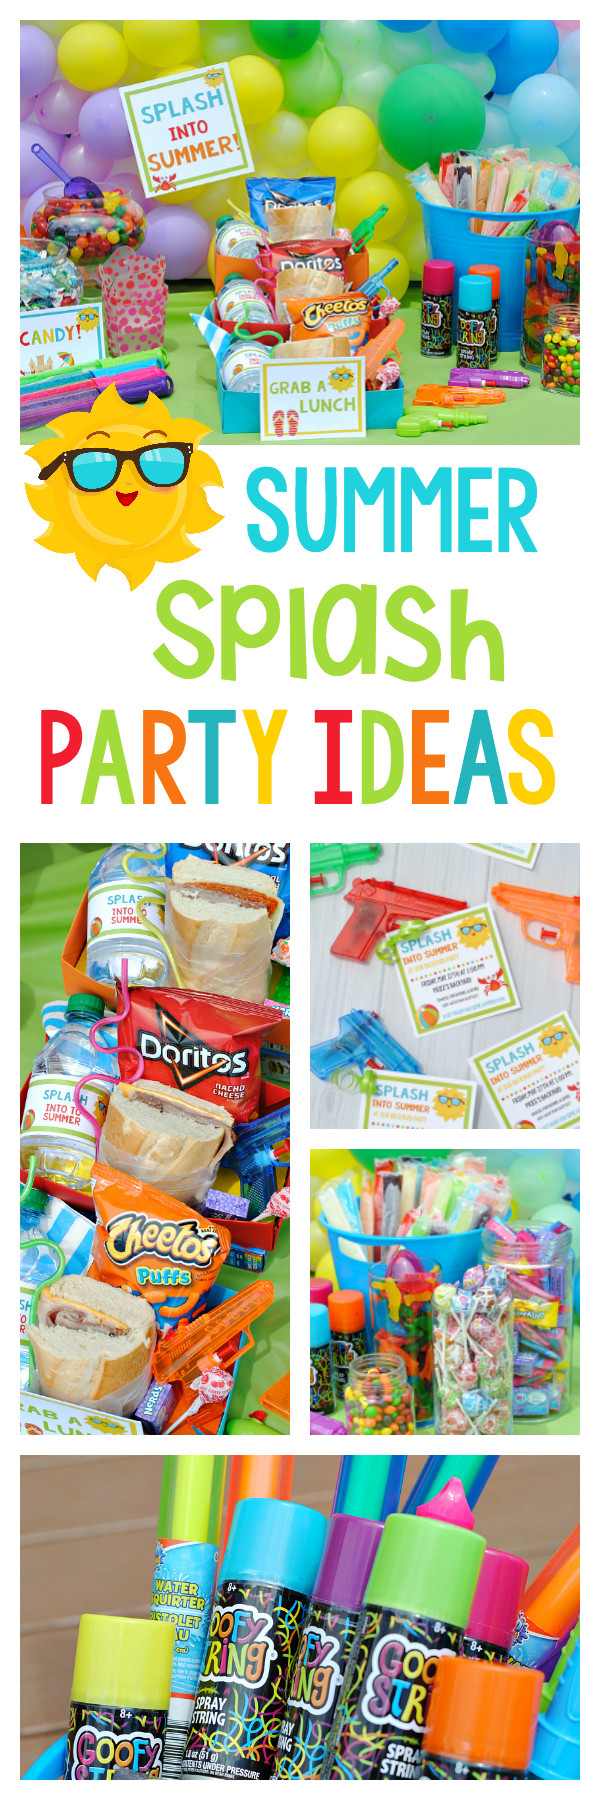 Summer Water Party Ideas  Splash Into Summer Party – Fun Squared